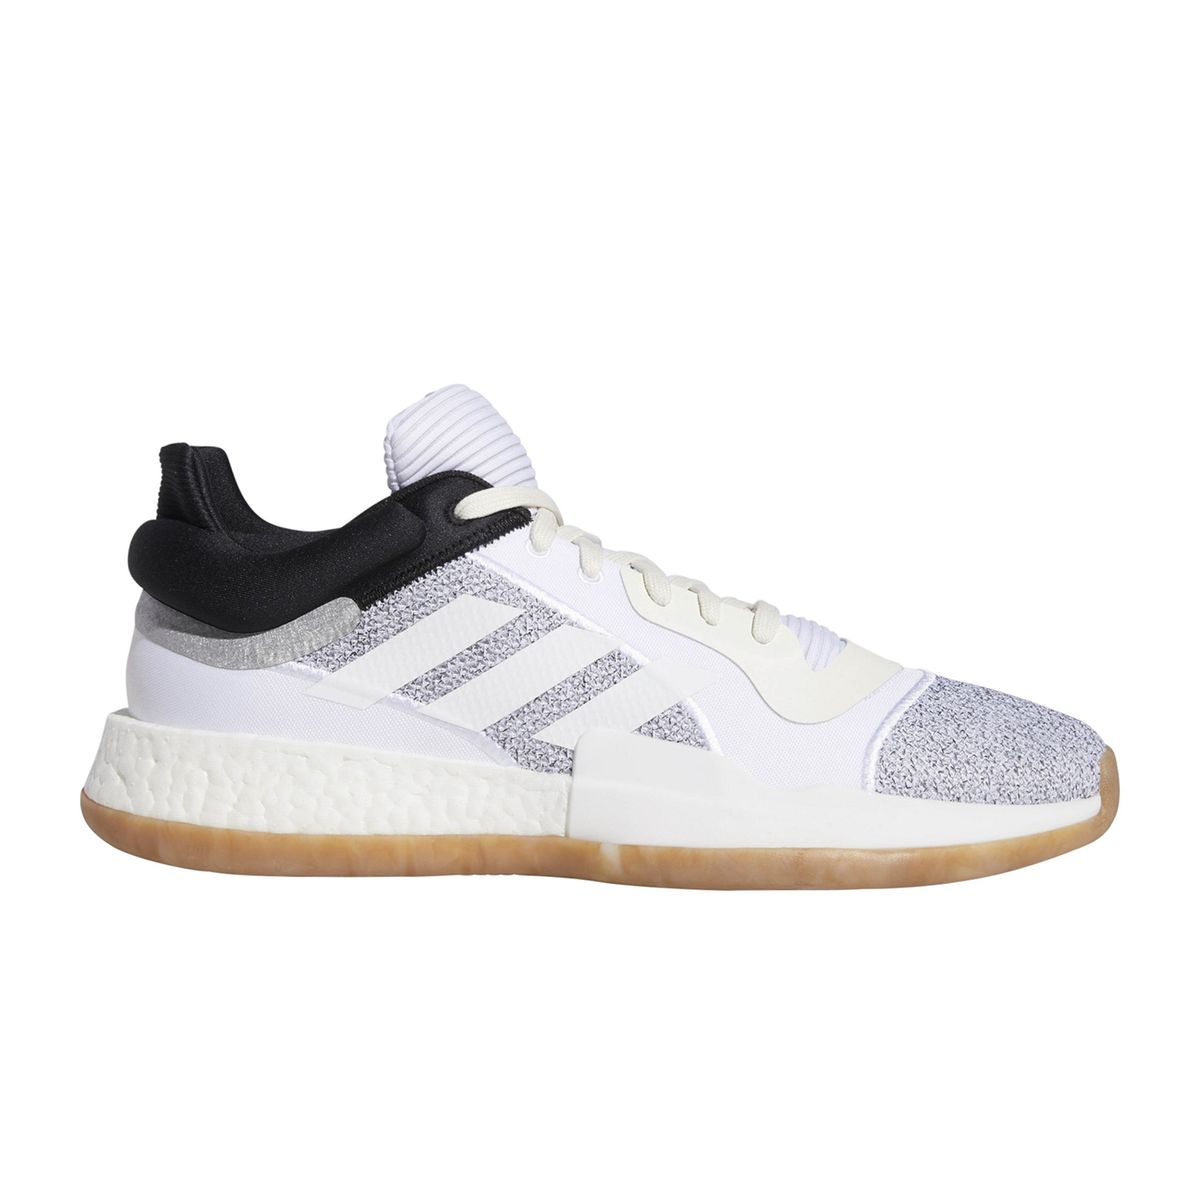 Chaussures basketball Marquee Boost Low | board3 in 2019